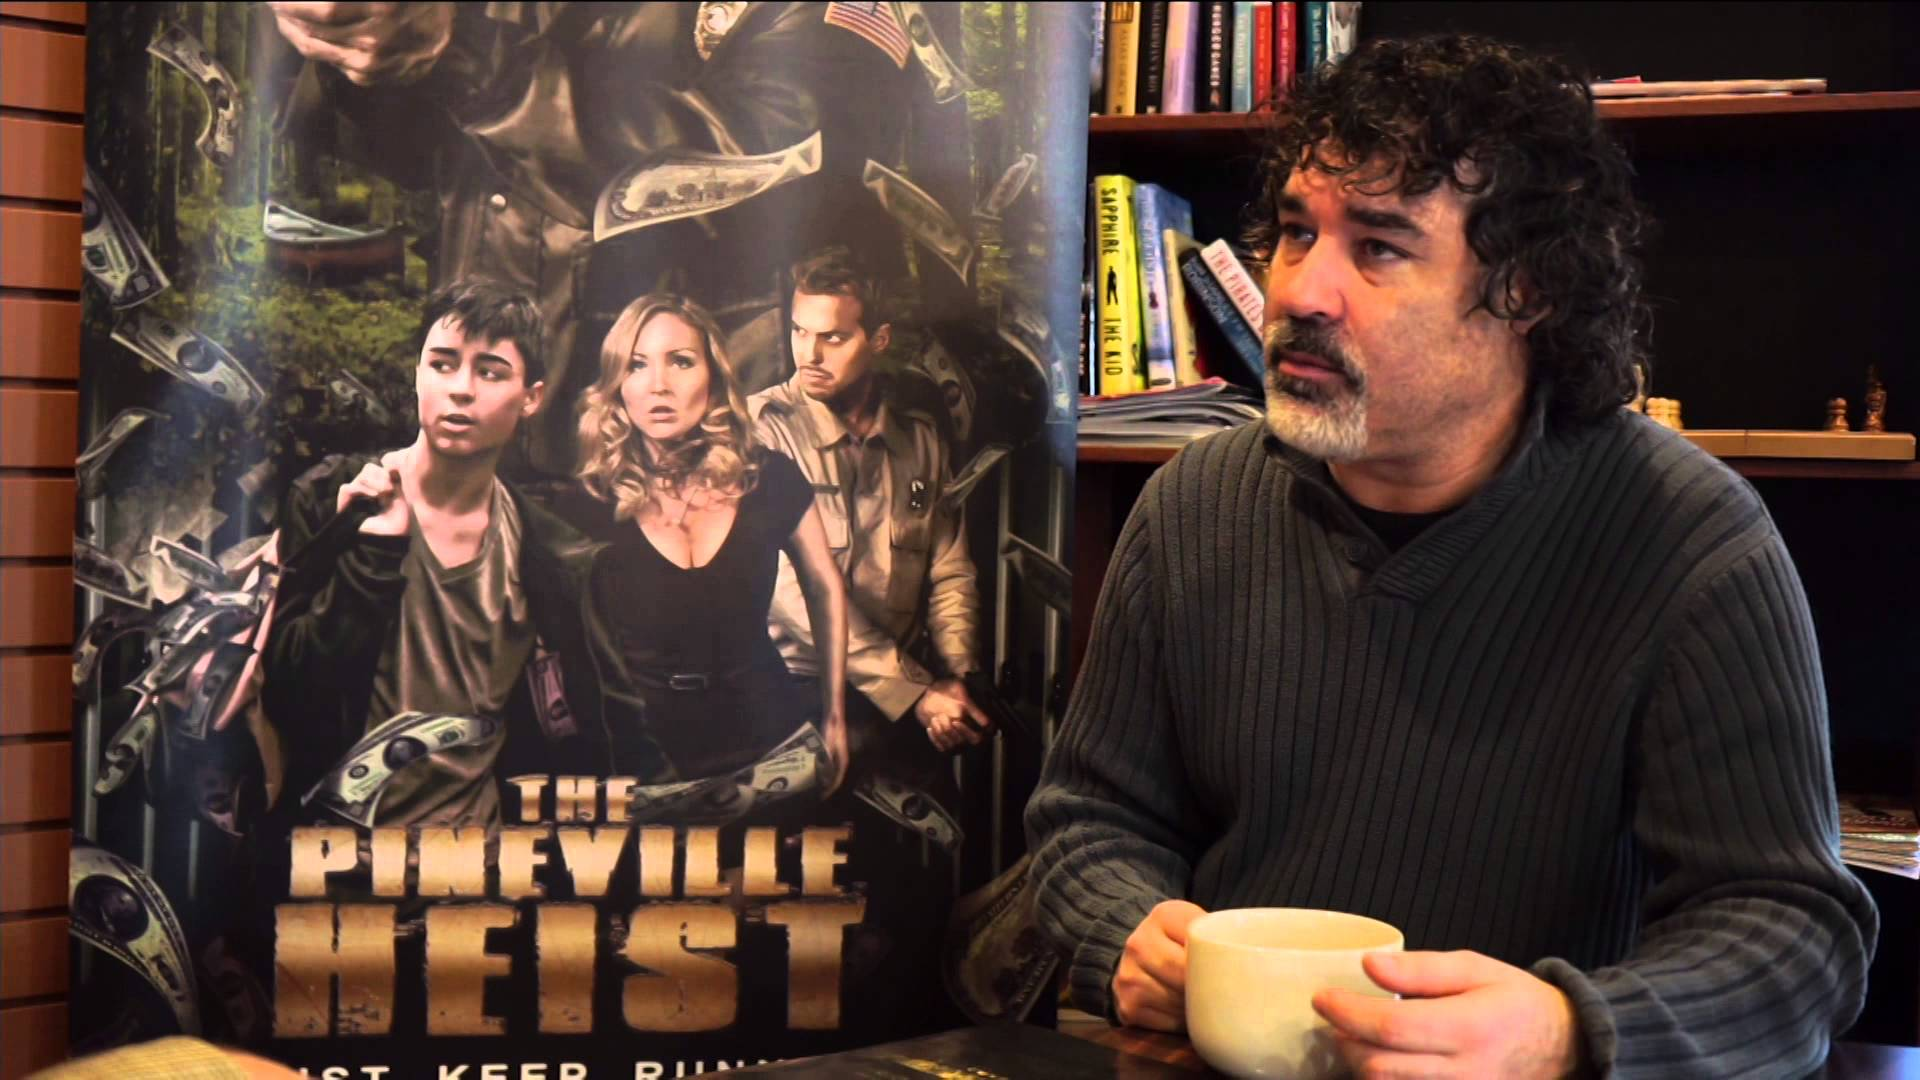 Director Lee Chambers The Pineville Heist heads to cinemas April 6th Thunder Bay